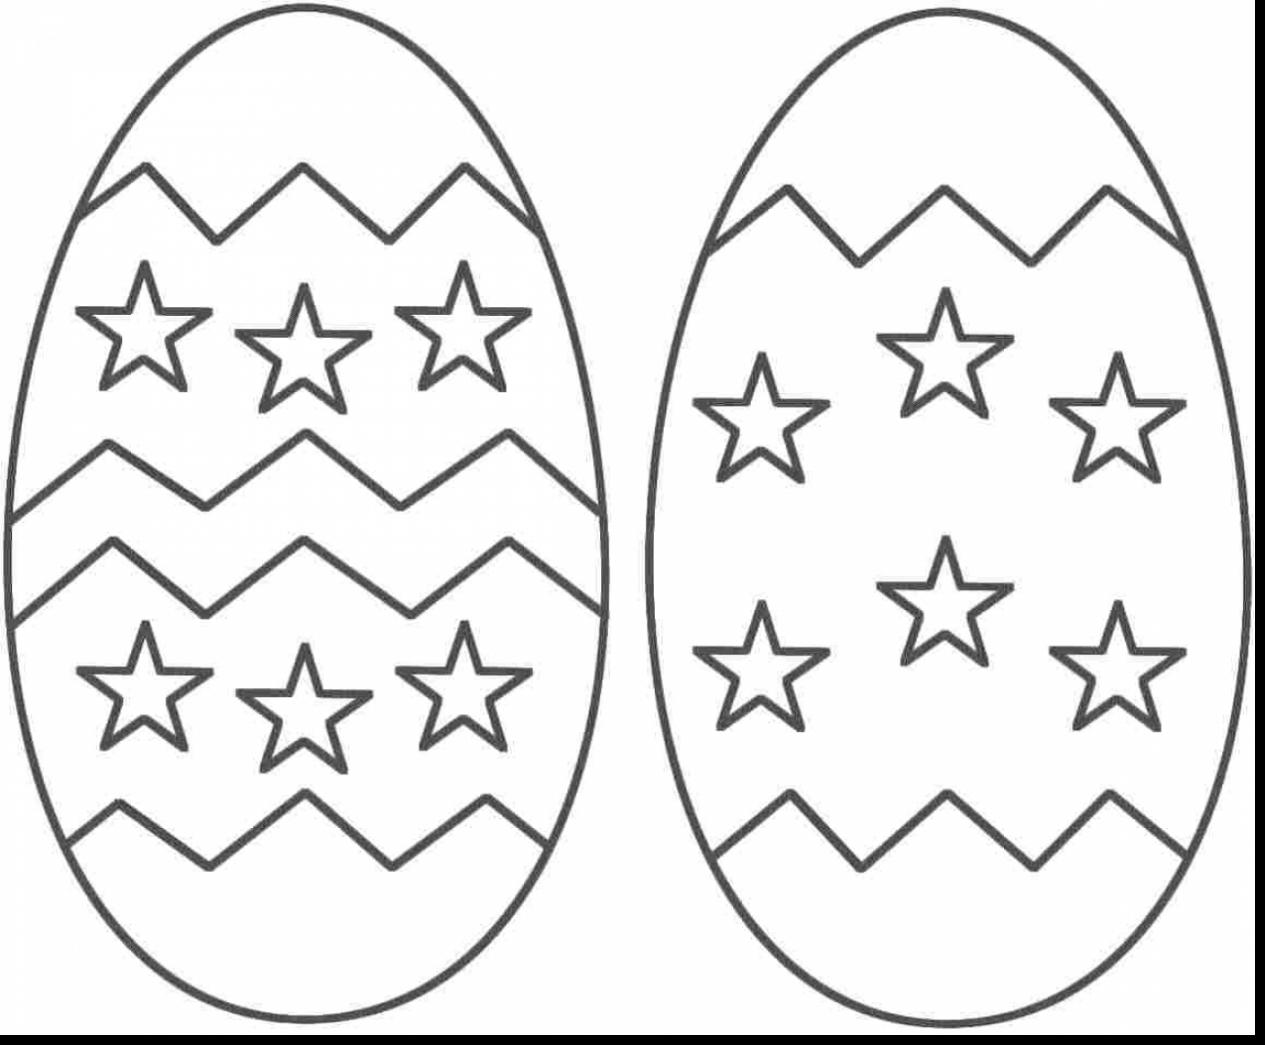 Blank Easter Egg Coloring Pages At Getcolorings